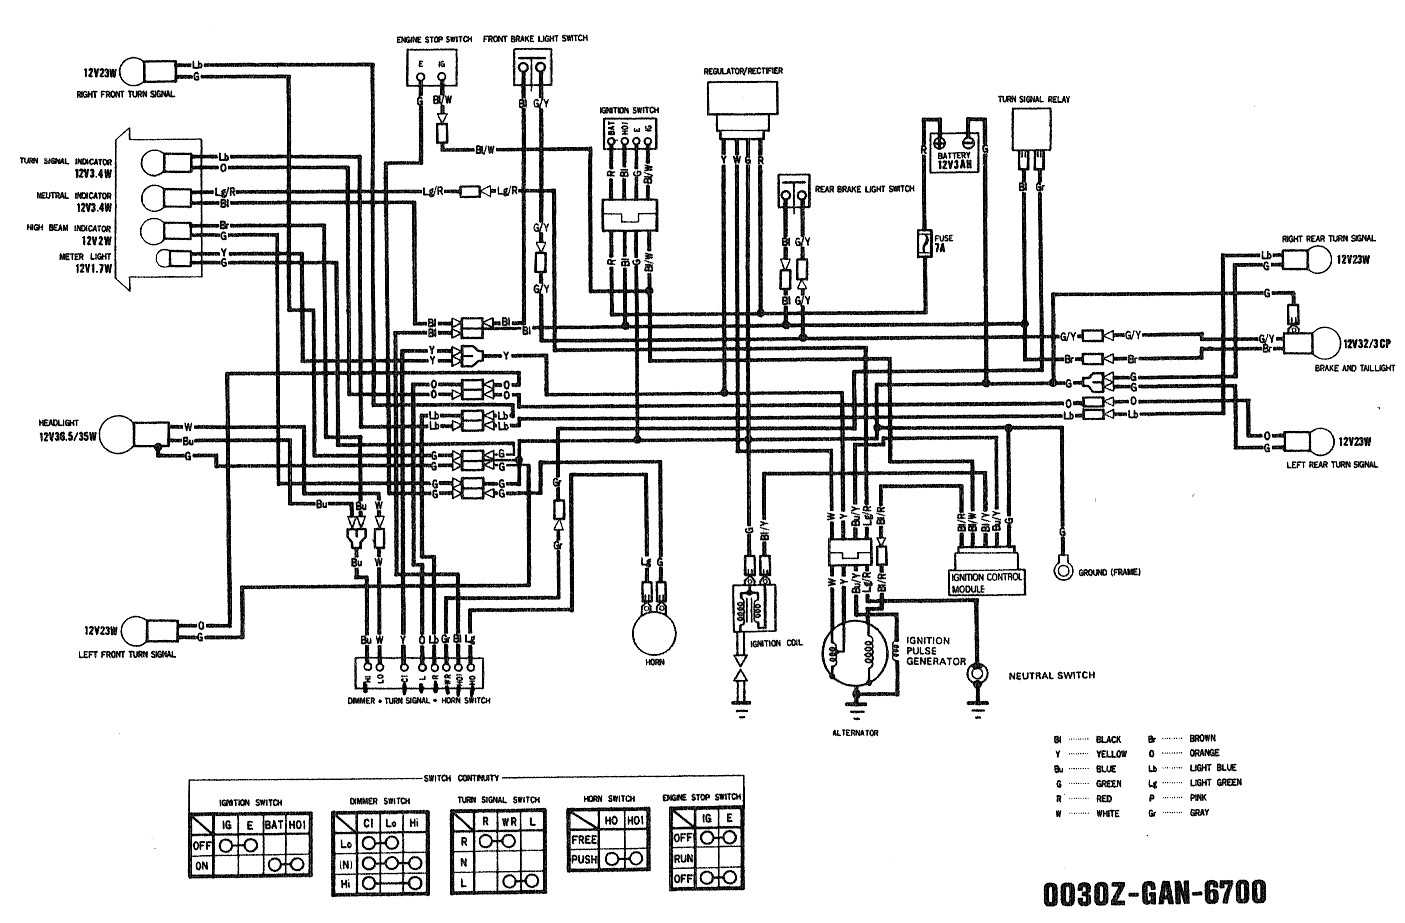 generous 1970 honda ct70 wiring diagram pictures inspiration, Wiring diagram